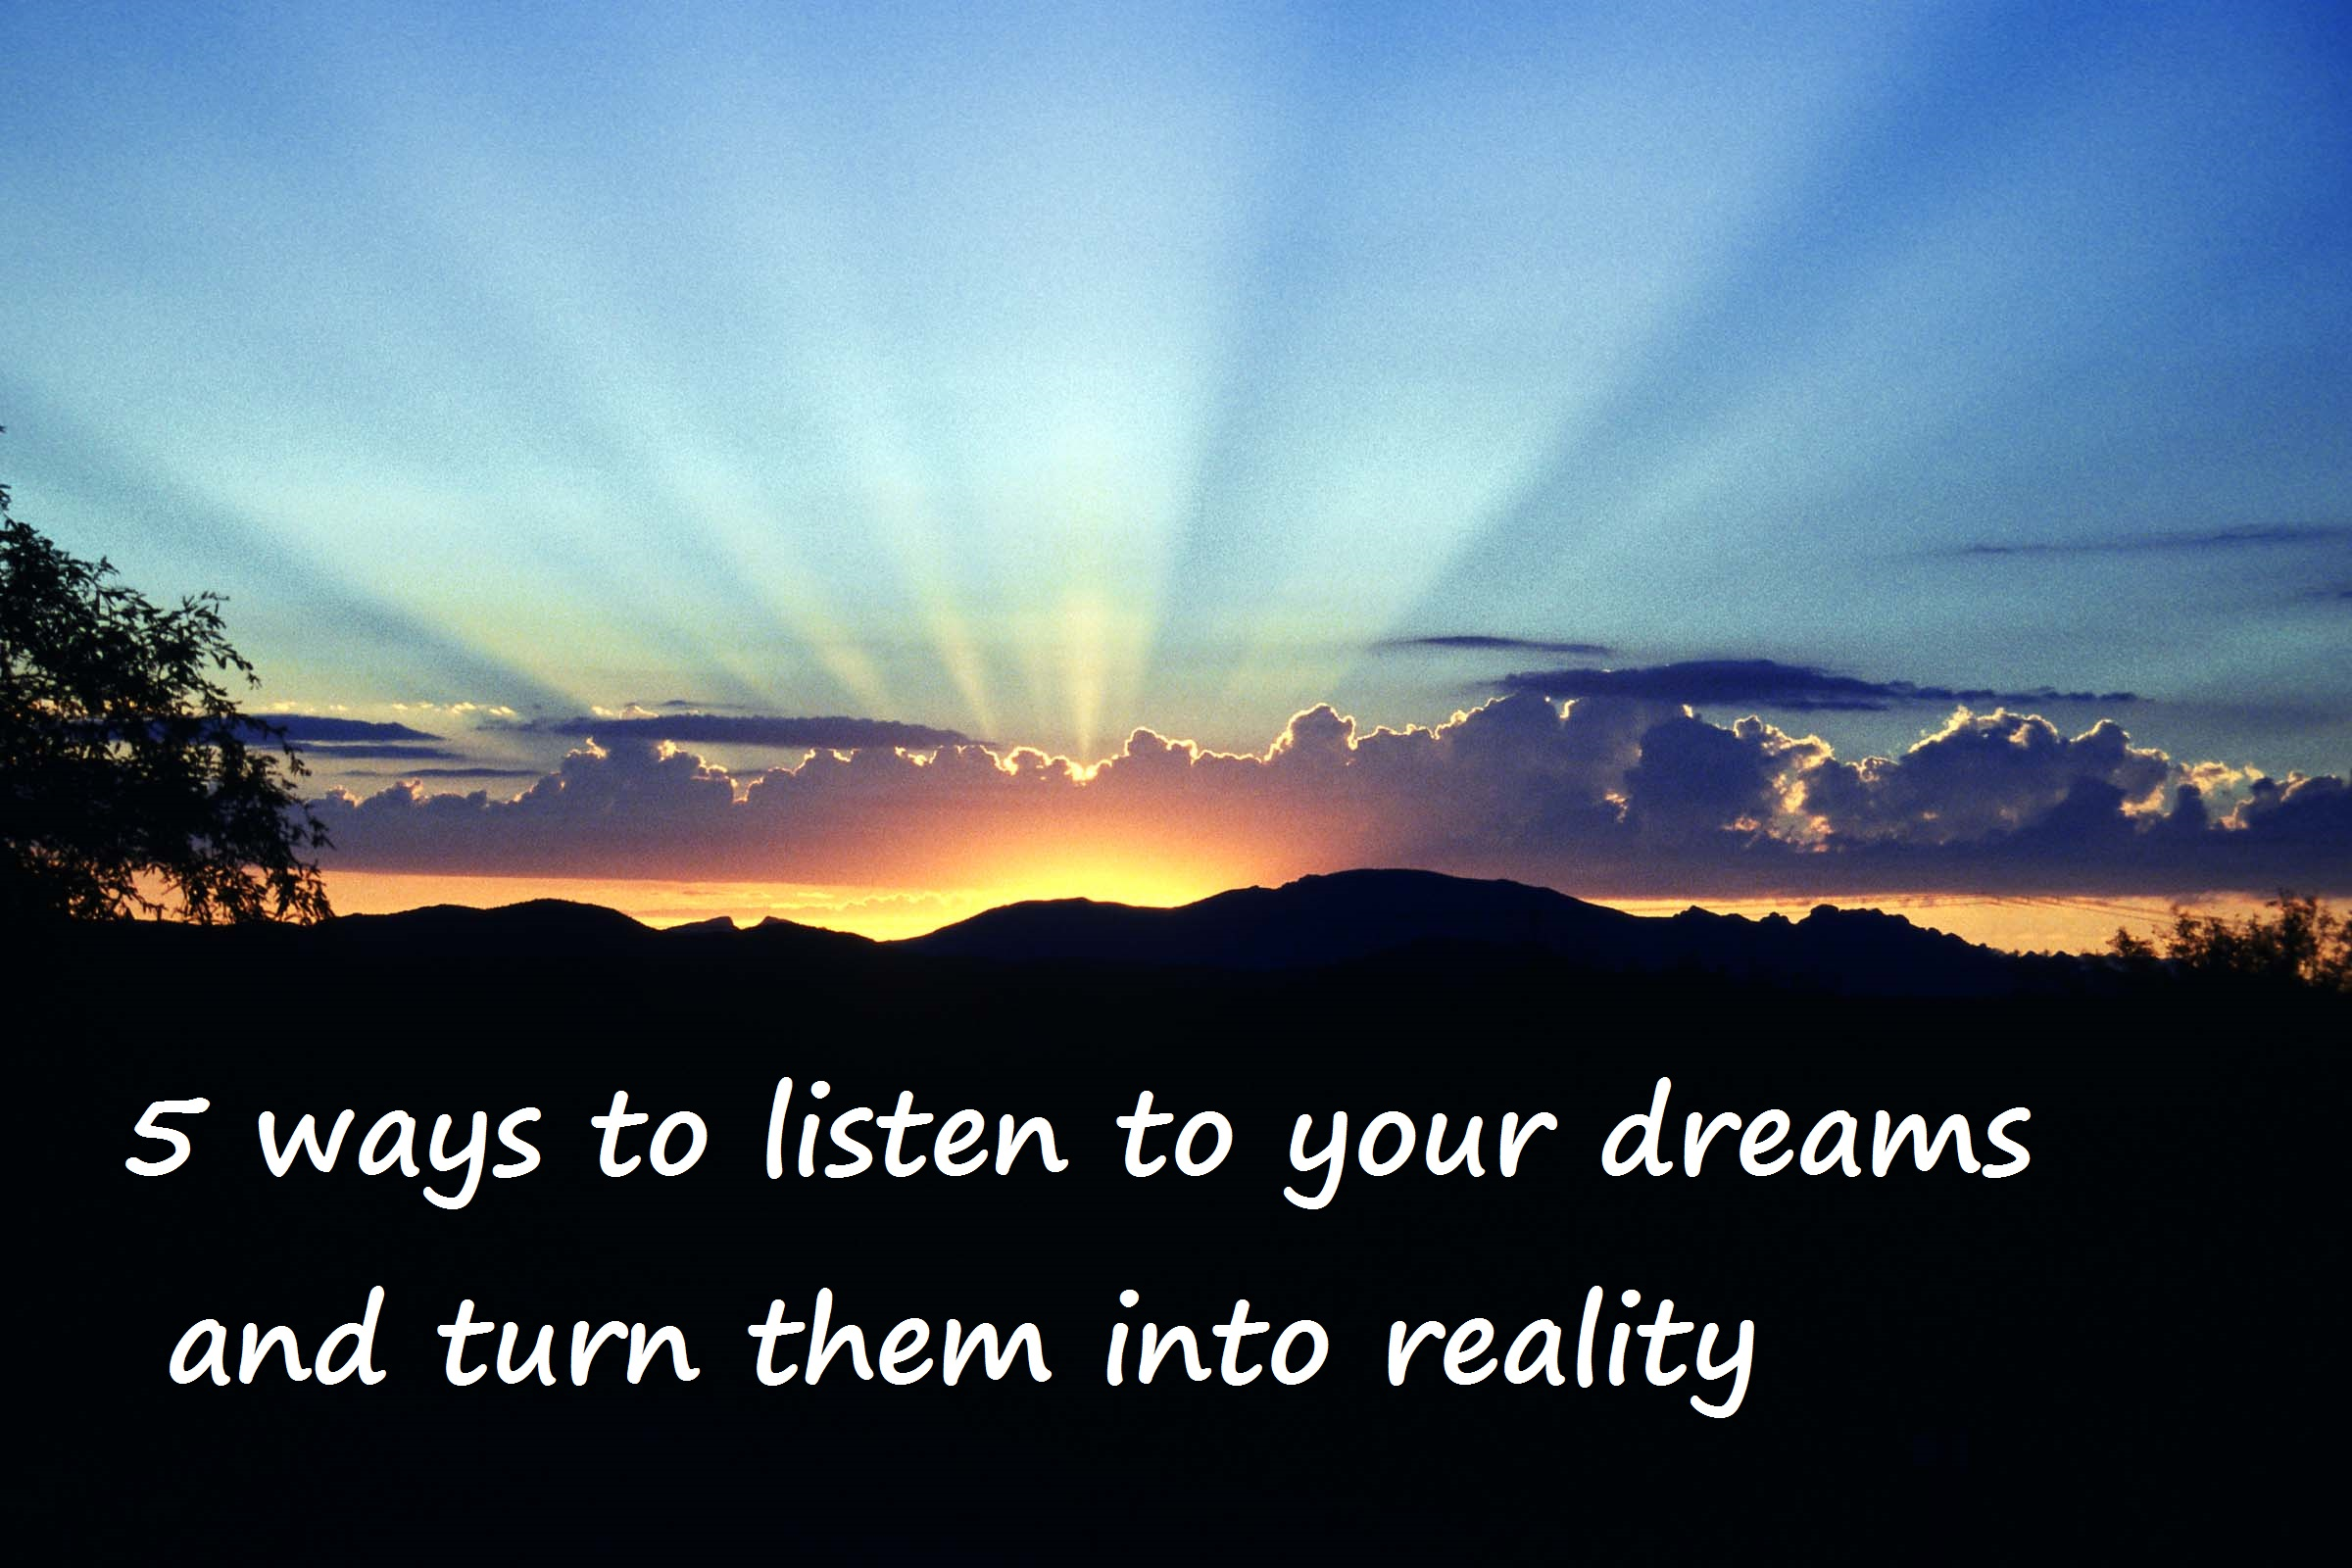 law of attraction exercises: 5 ways to listen to your dreams and turn them into reality